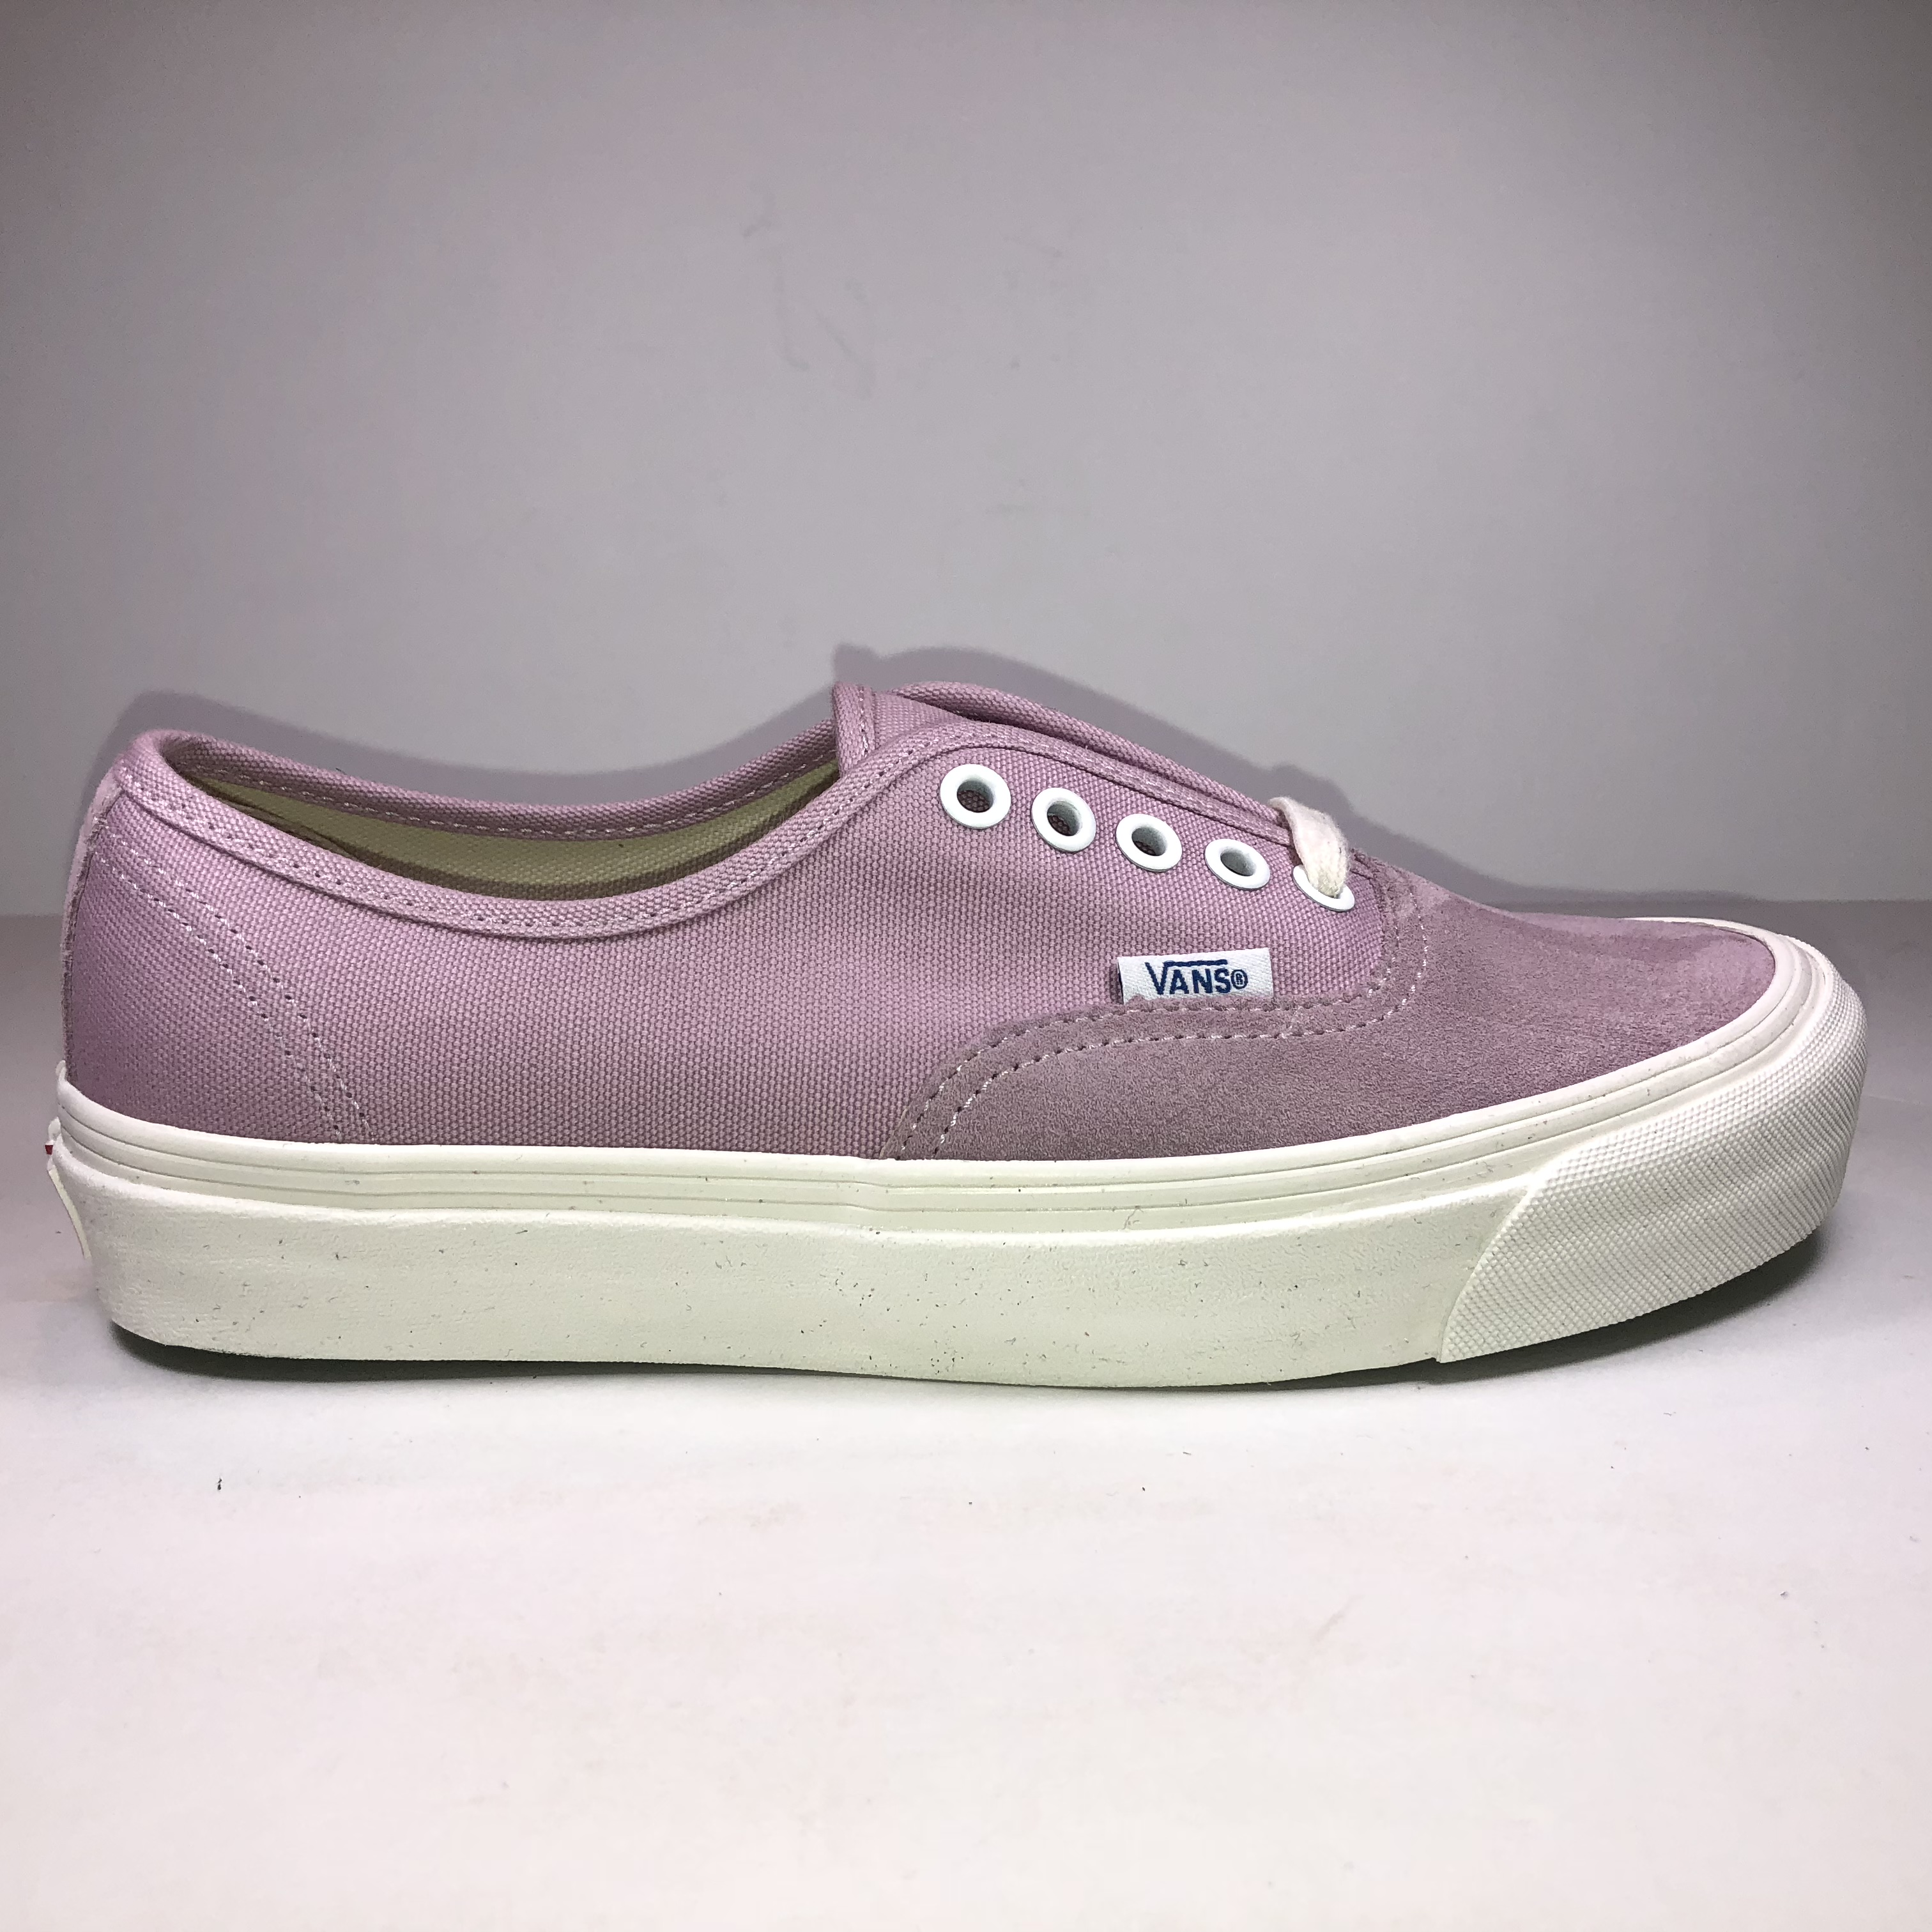 44ac8cbd7eec Vans Vans OG Authentic LX Suede   Canvas Fragrant Lilac Pink   White  Sneakers Size 10 - Low-Top Sneakers for Sale - Grailed